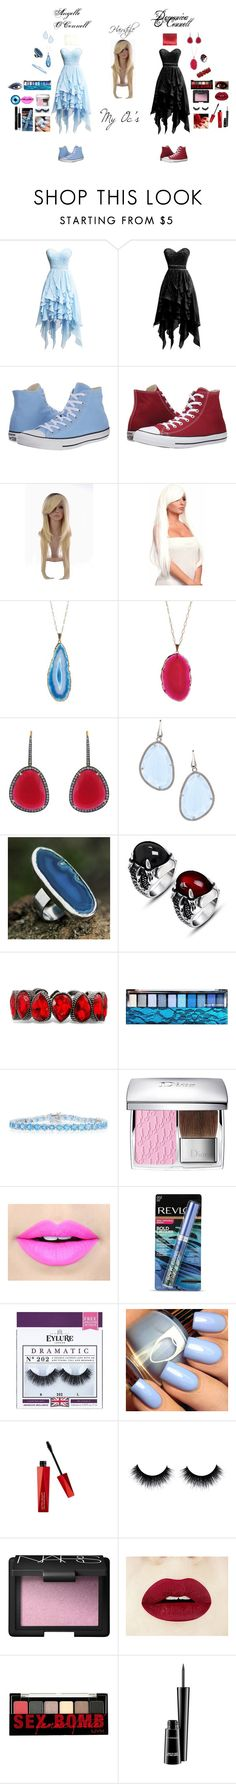 """""""My Oc's"""" by hoodie-326 on Polyvore featuring Converse, BRIT*, Valerie Nahmani Designs, Christina Debs, Elliott Chandler, NOVICA, Andante, Hard Candy, Belk & Co. and Christian Dior"""